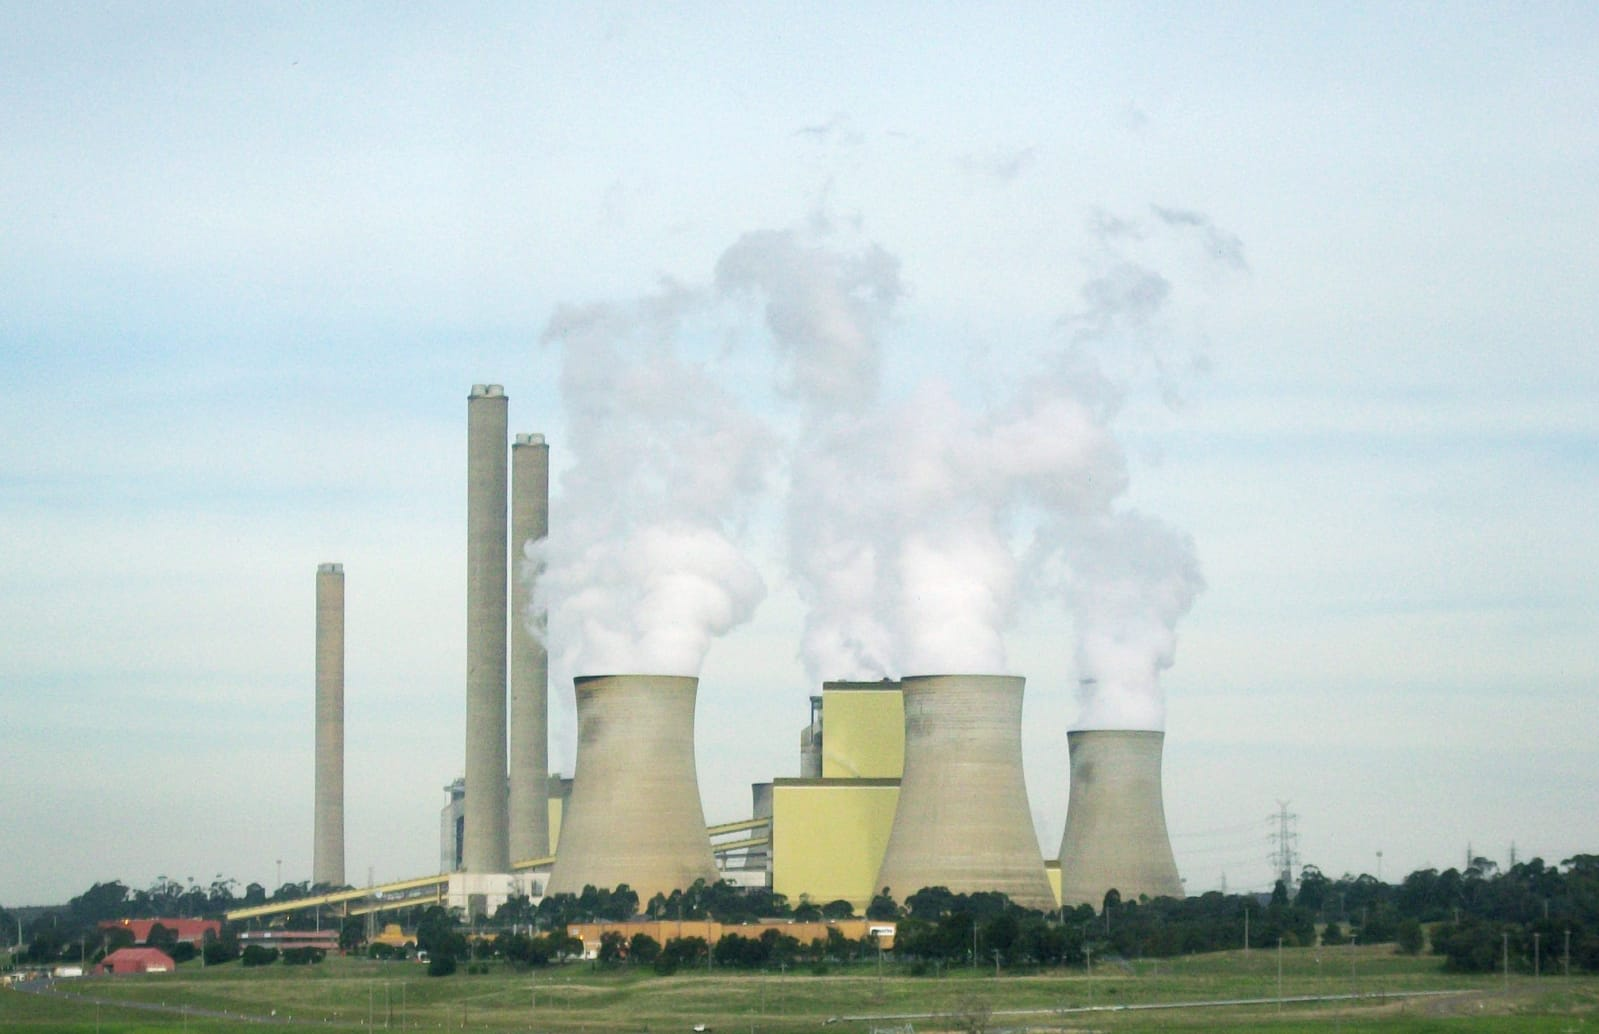 a disused coal power station will reopen to solely power crypto